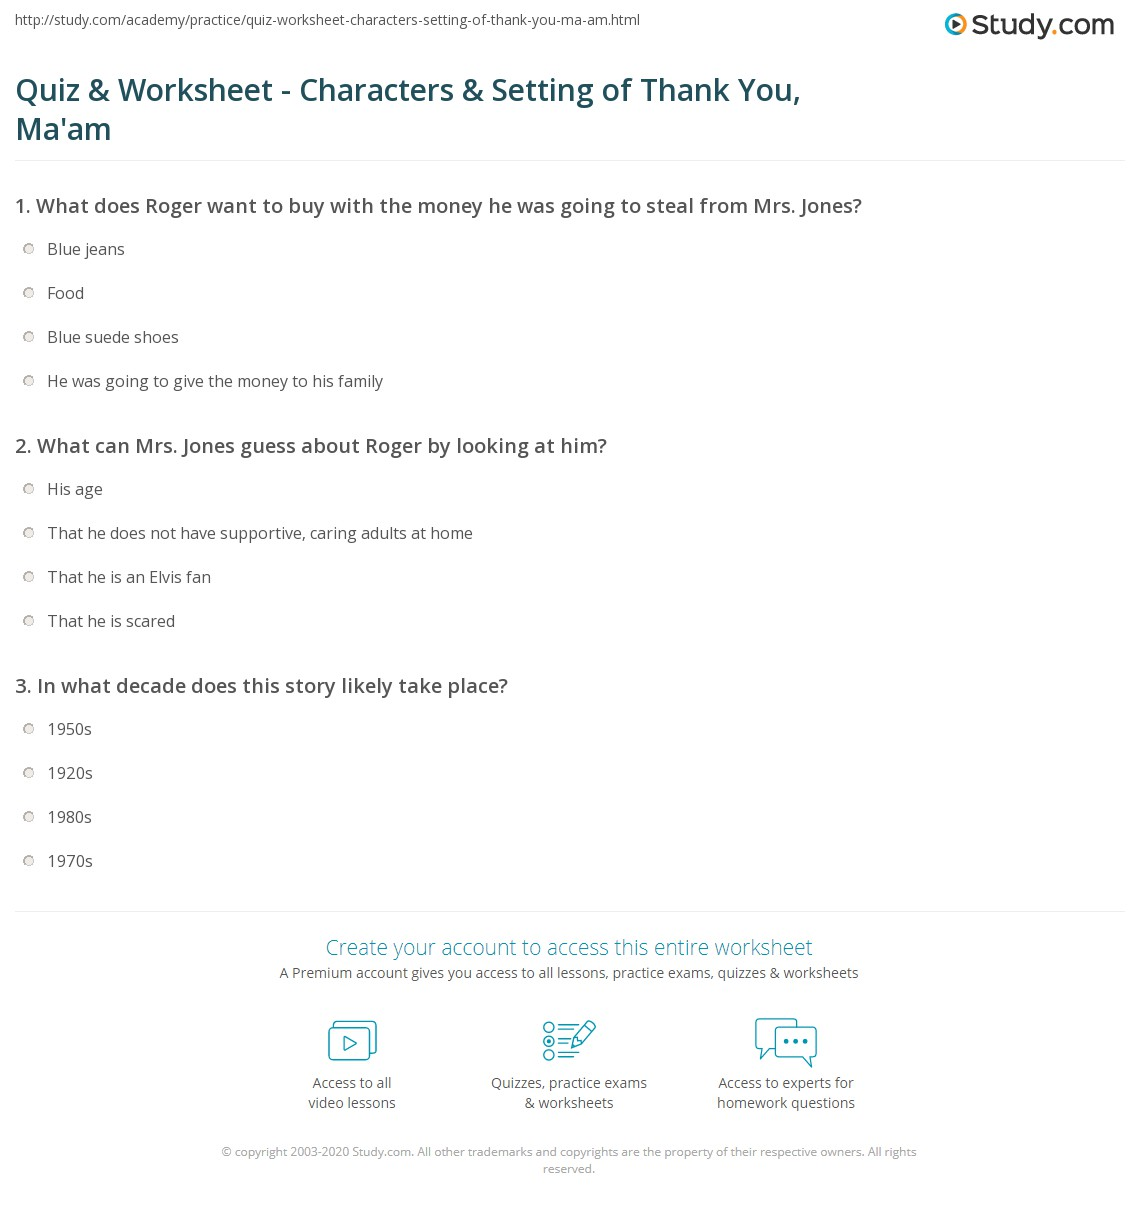 Character And Setting Worksheets Esl : Quiz worksheet characters setting of thank you ma